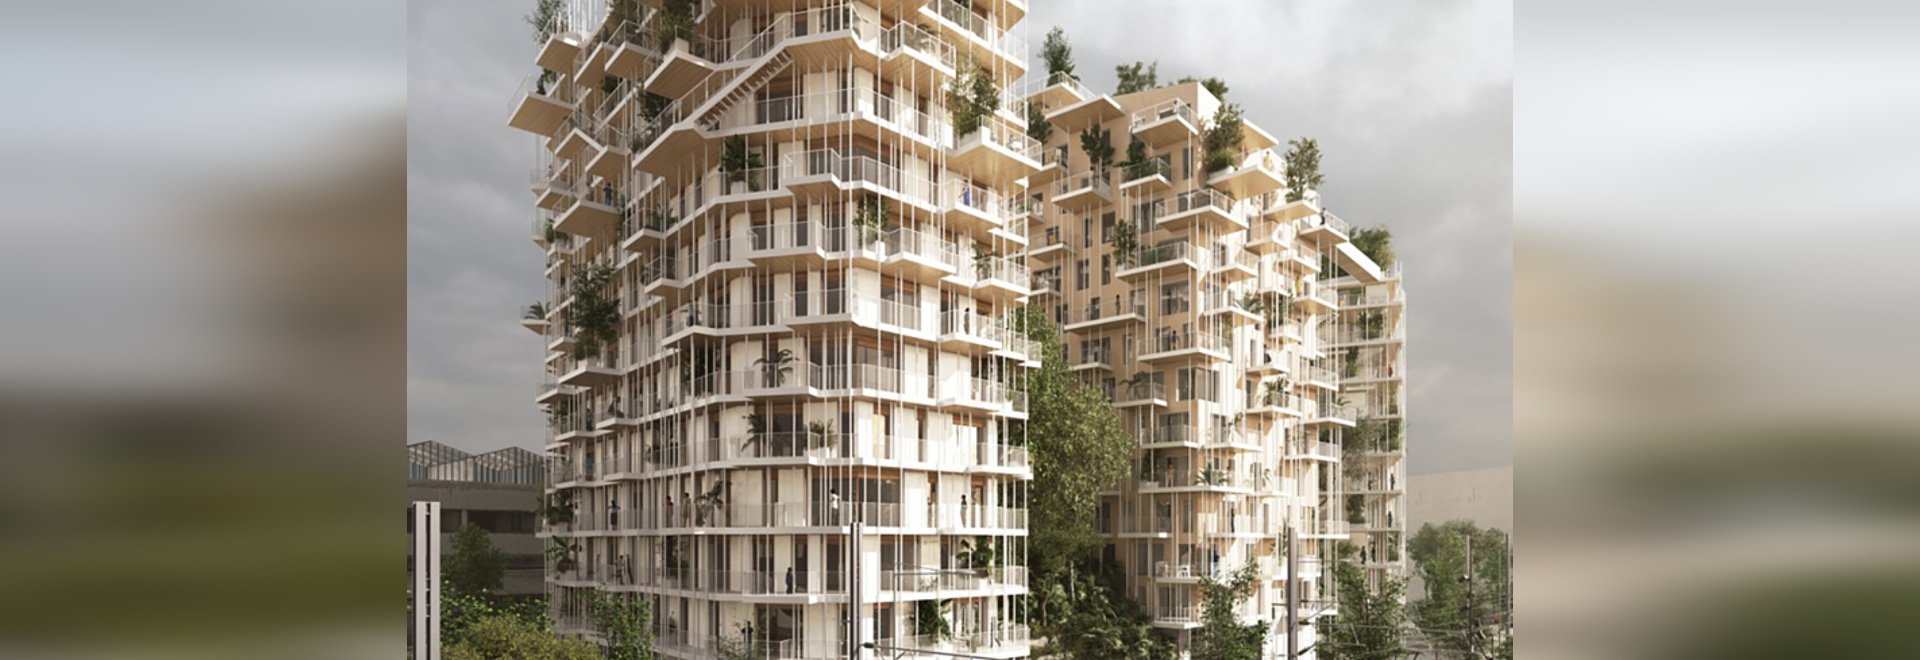 the proposed tower climbs to a total height of 50 meters